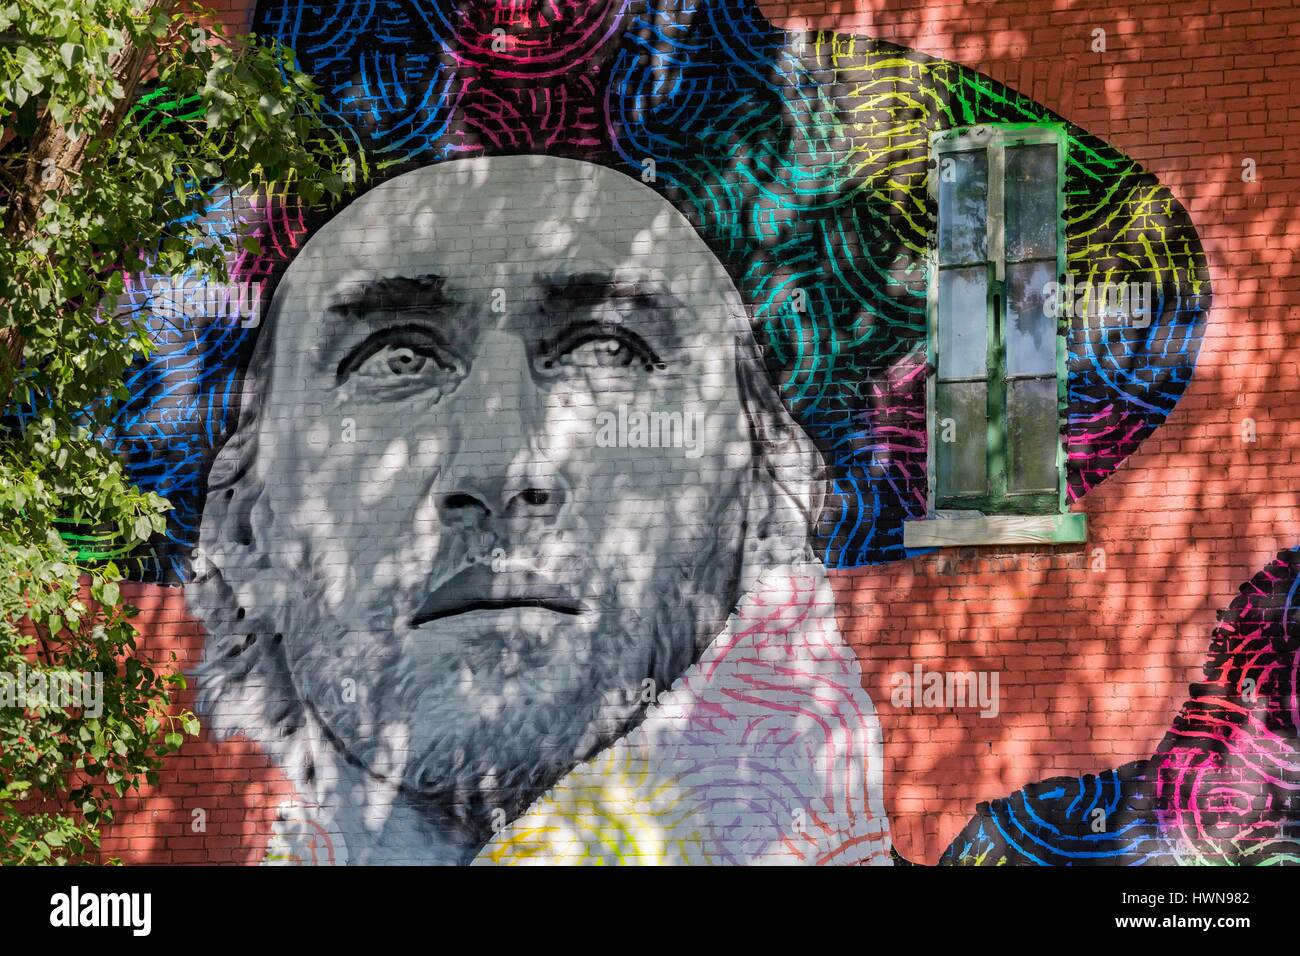 Canada, Province of Quebec, Montreal Hsix and Zek (Canada) festival Mural 2016 Portrait of famous actor Roy Dupuis - Stock Image